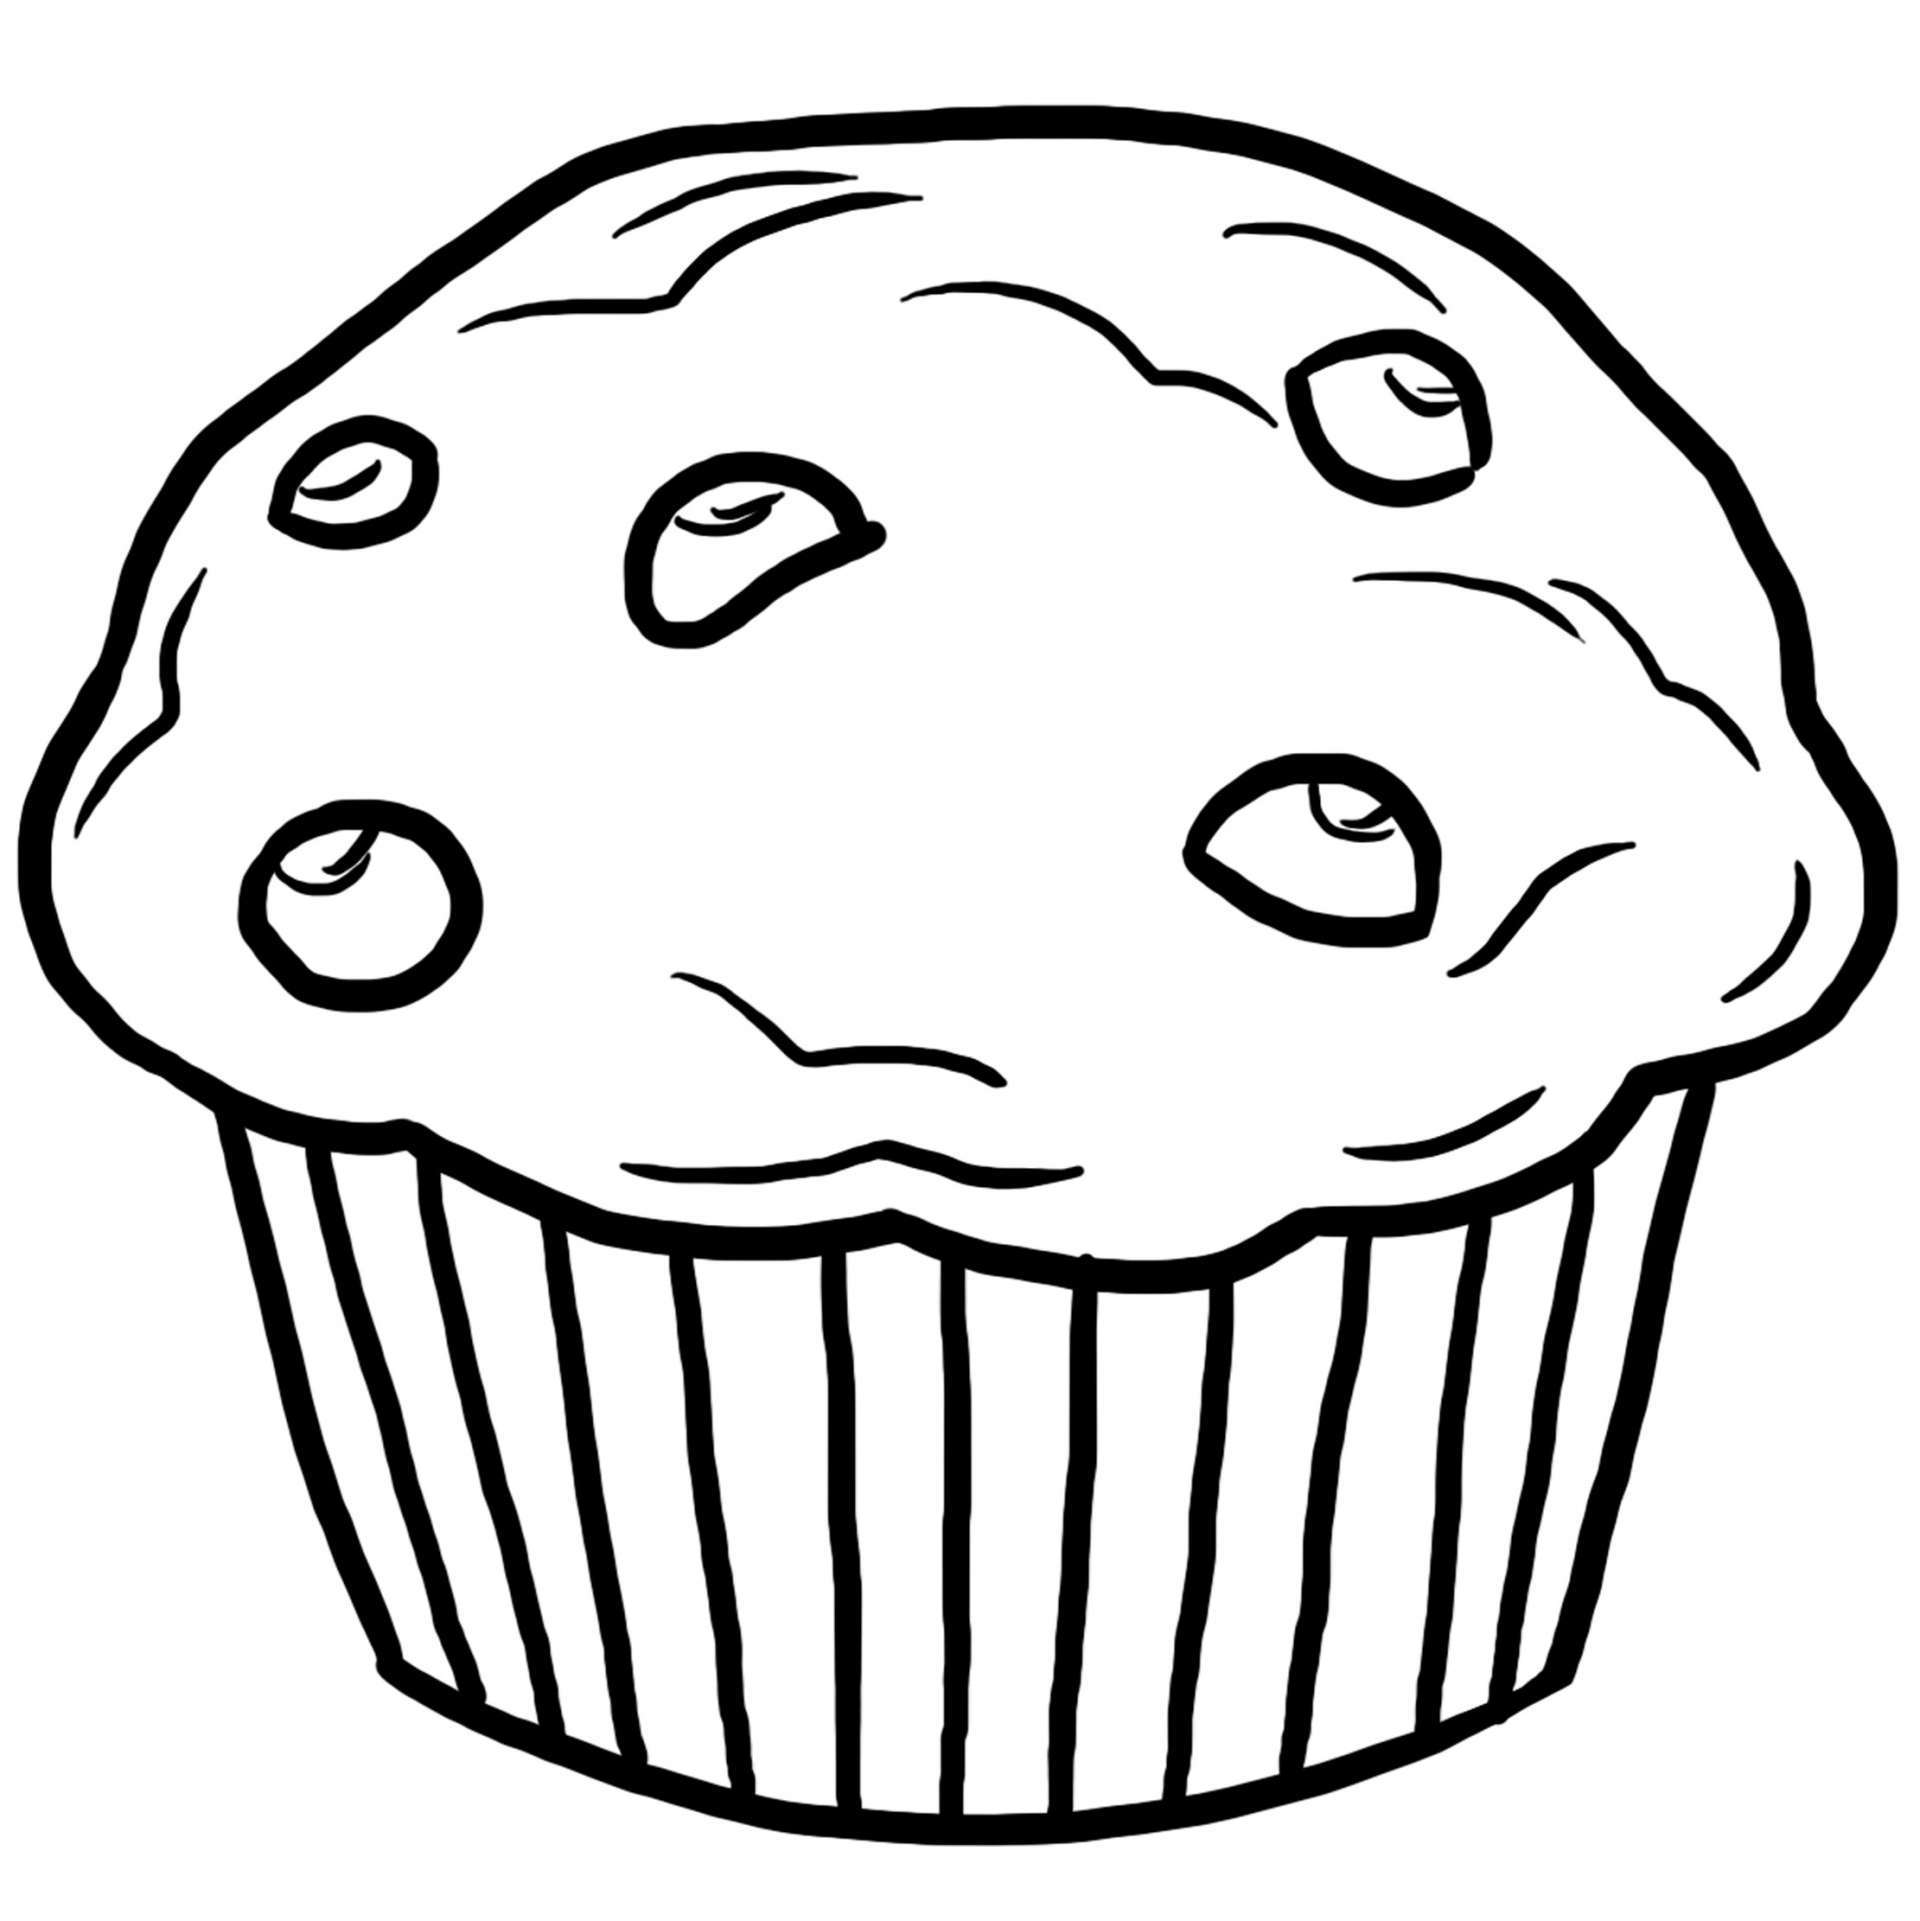 muffin pictures to color muffin clipart coloring page muffin coloring page muffin to pictures color